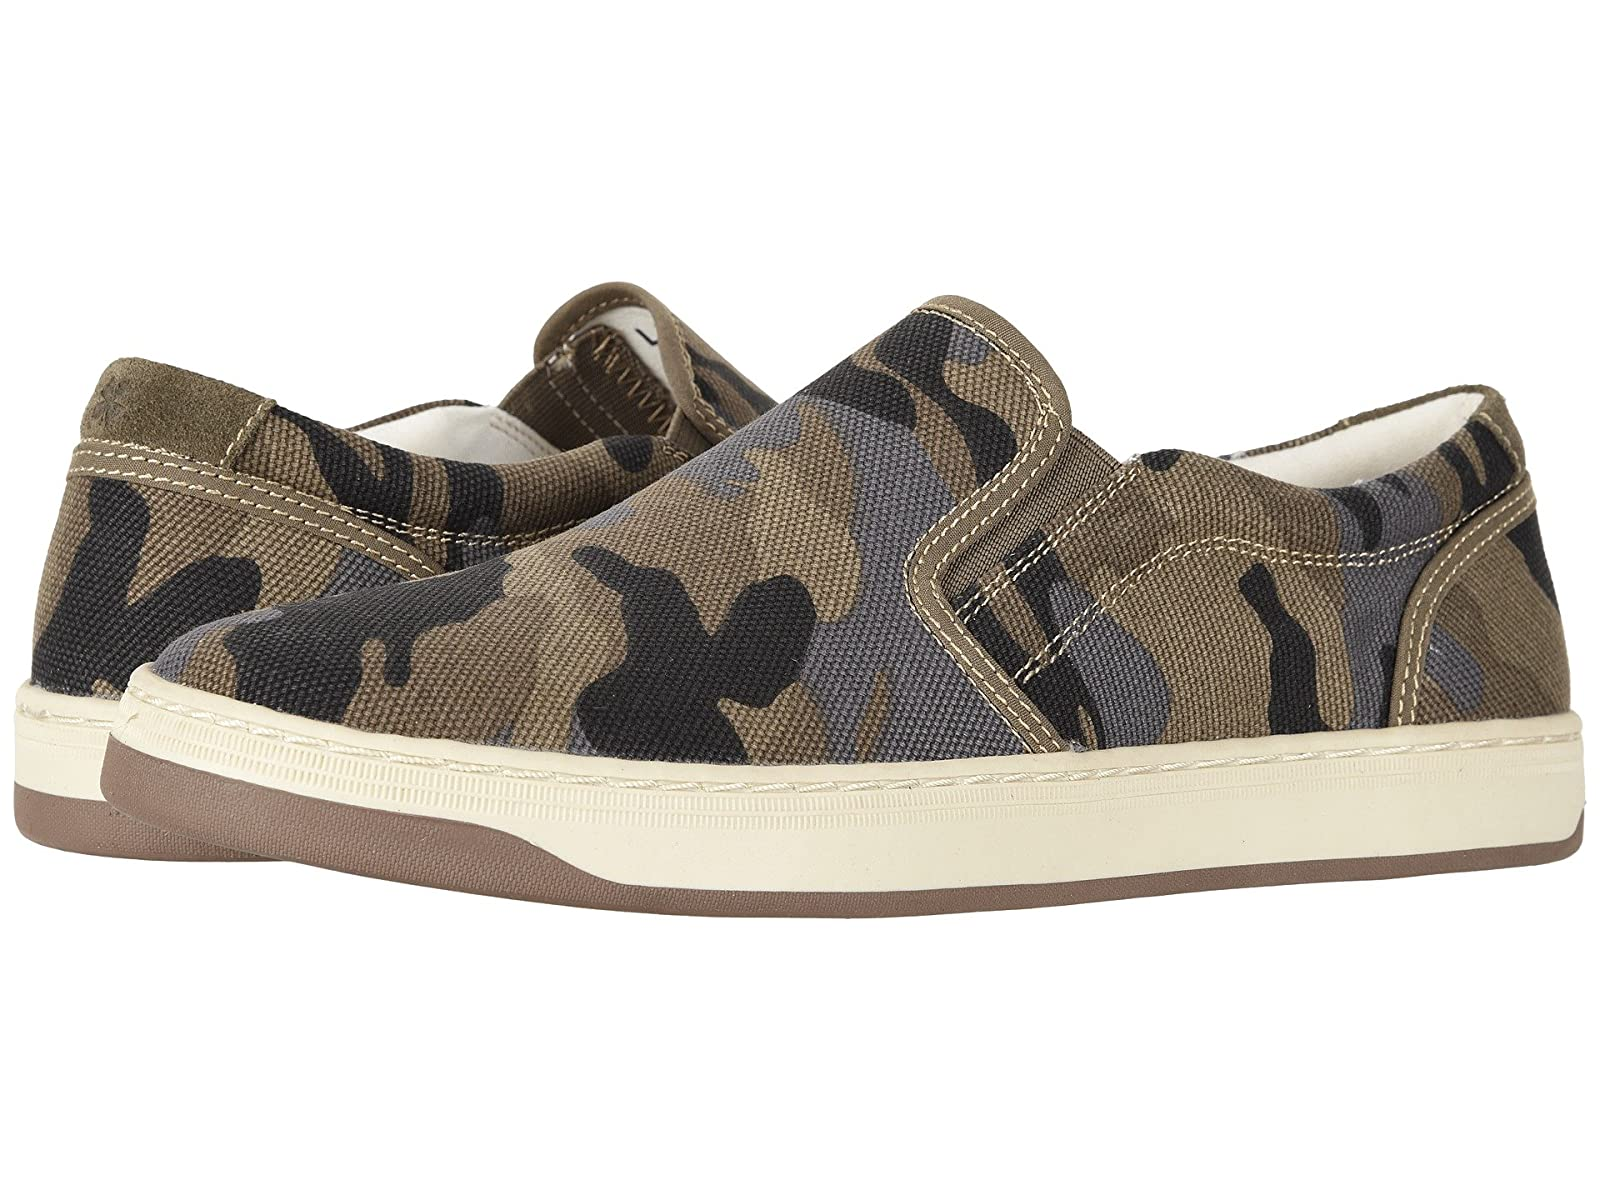 Lucky Brand StylesAtmospheric grades have affordable shoes